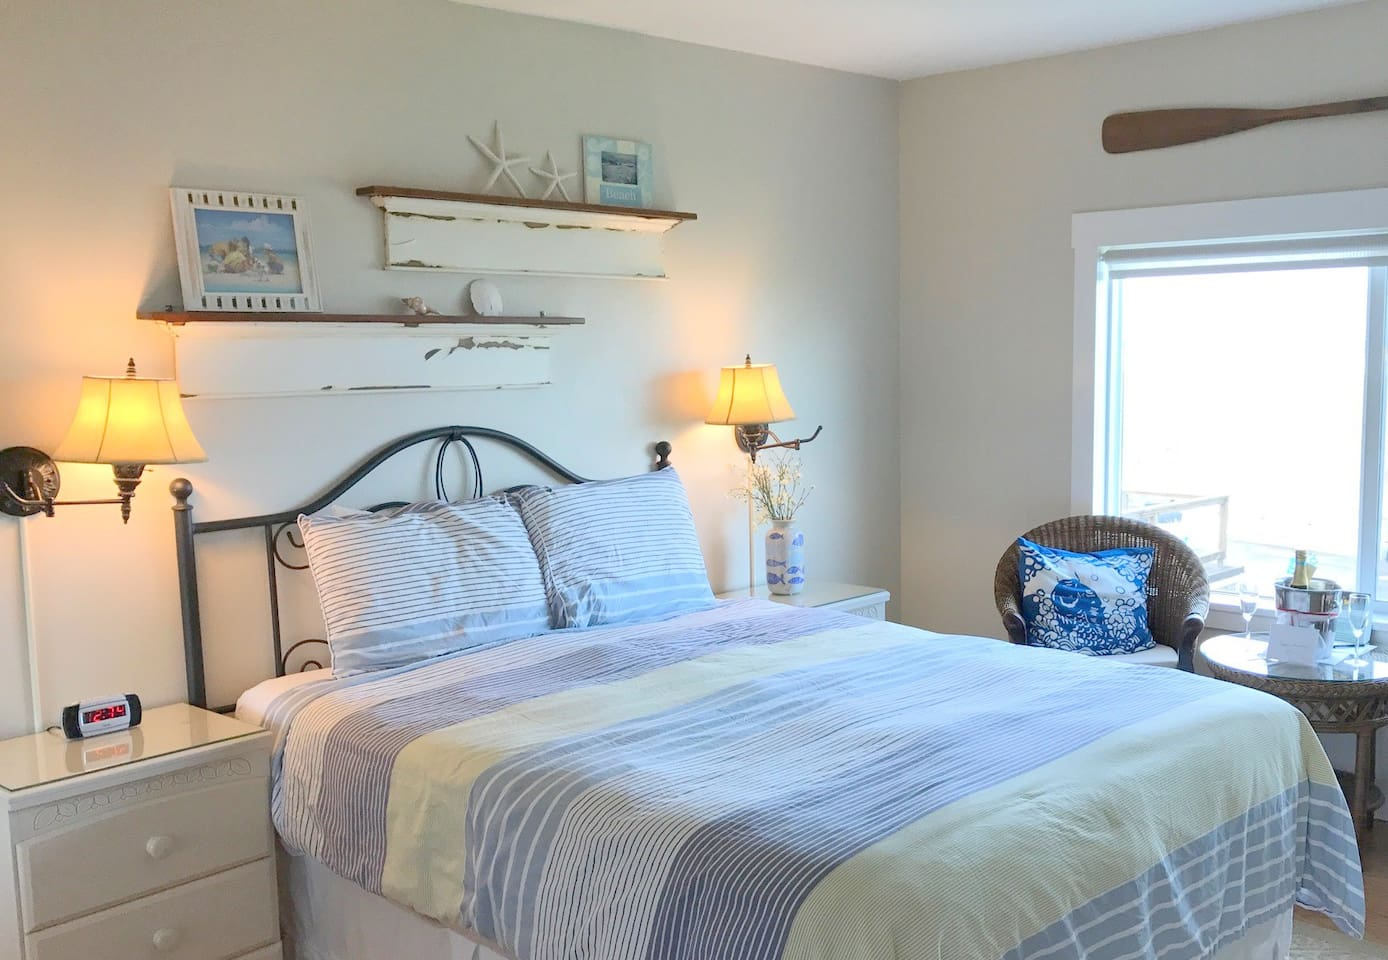 You can watch the ocean from the comfortable Queen bed!